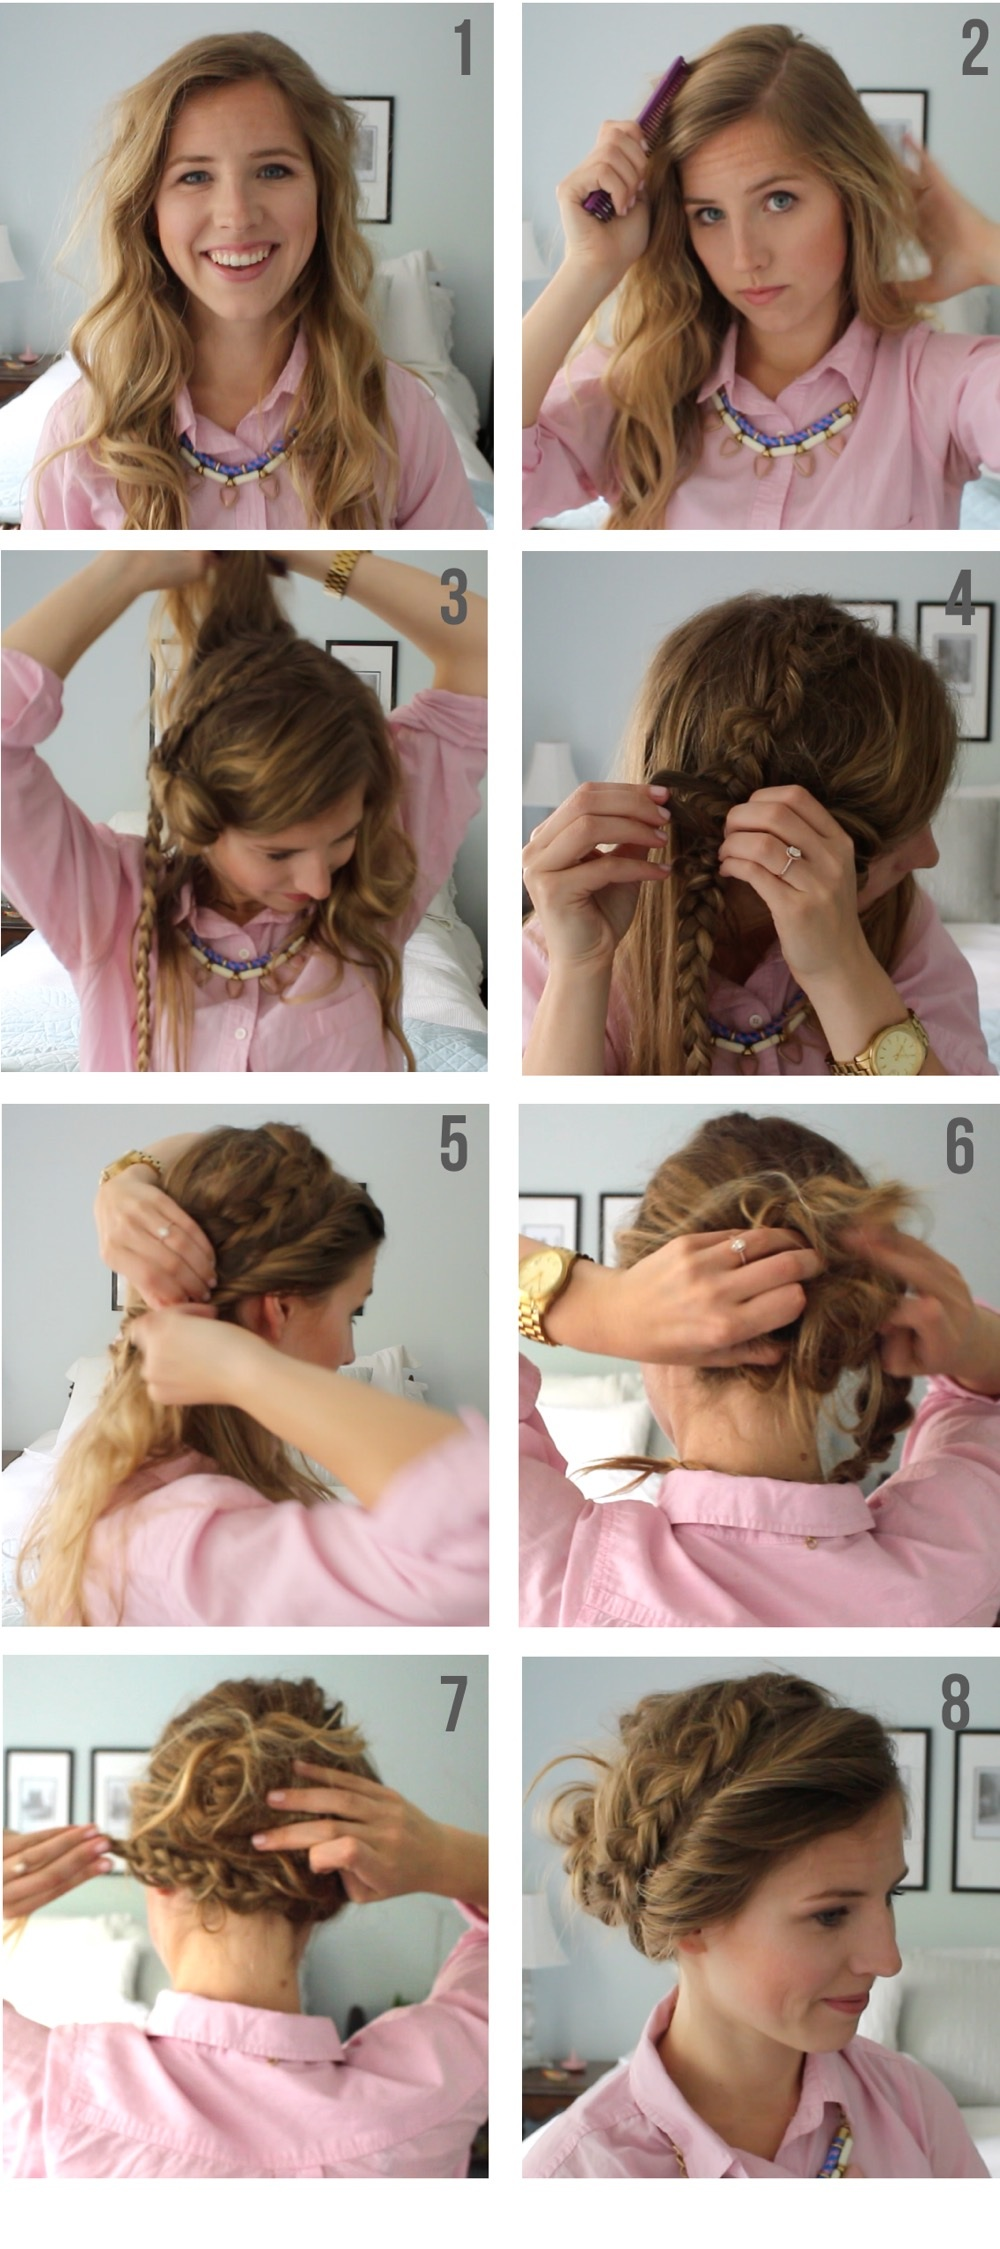 Get the Look: Braided Up-Do